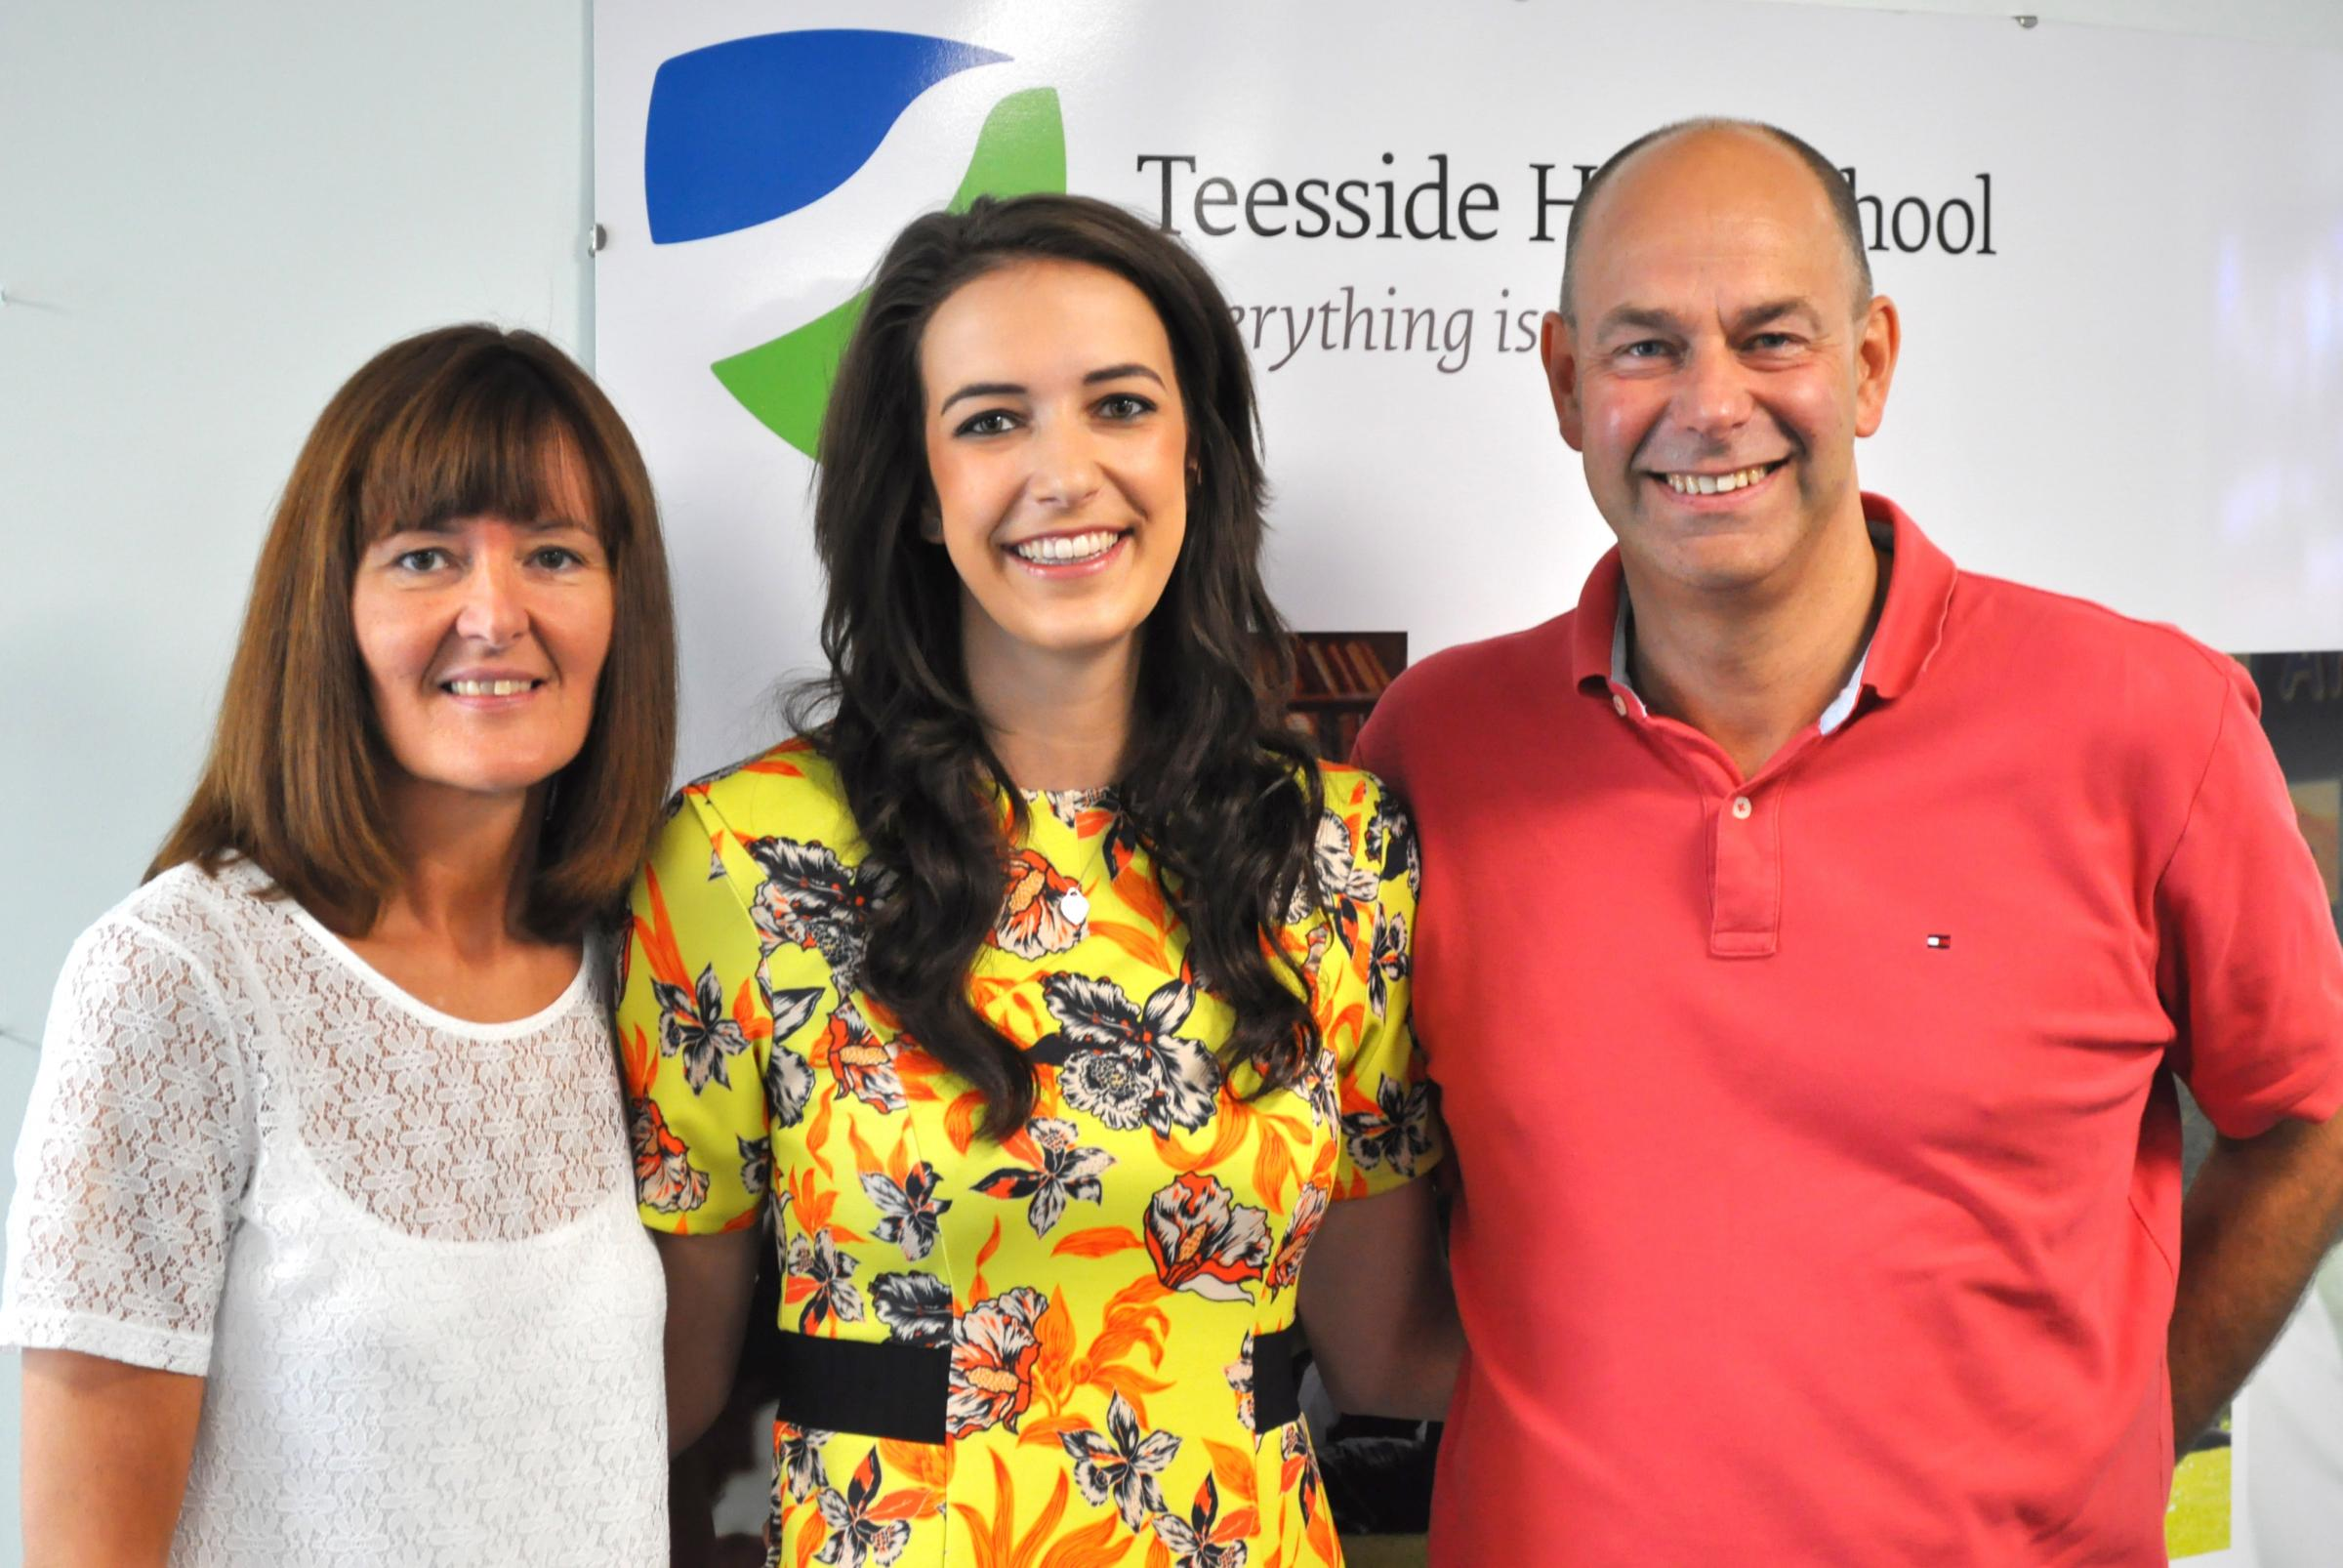 Teesside High School student Liz Edwards flanked by her parents, Alison and John.